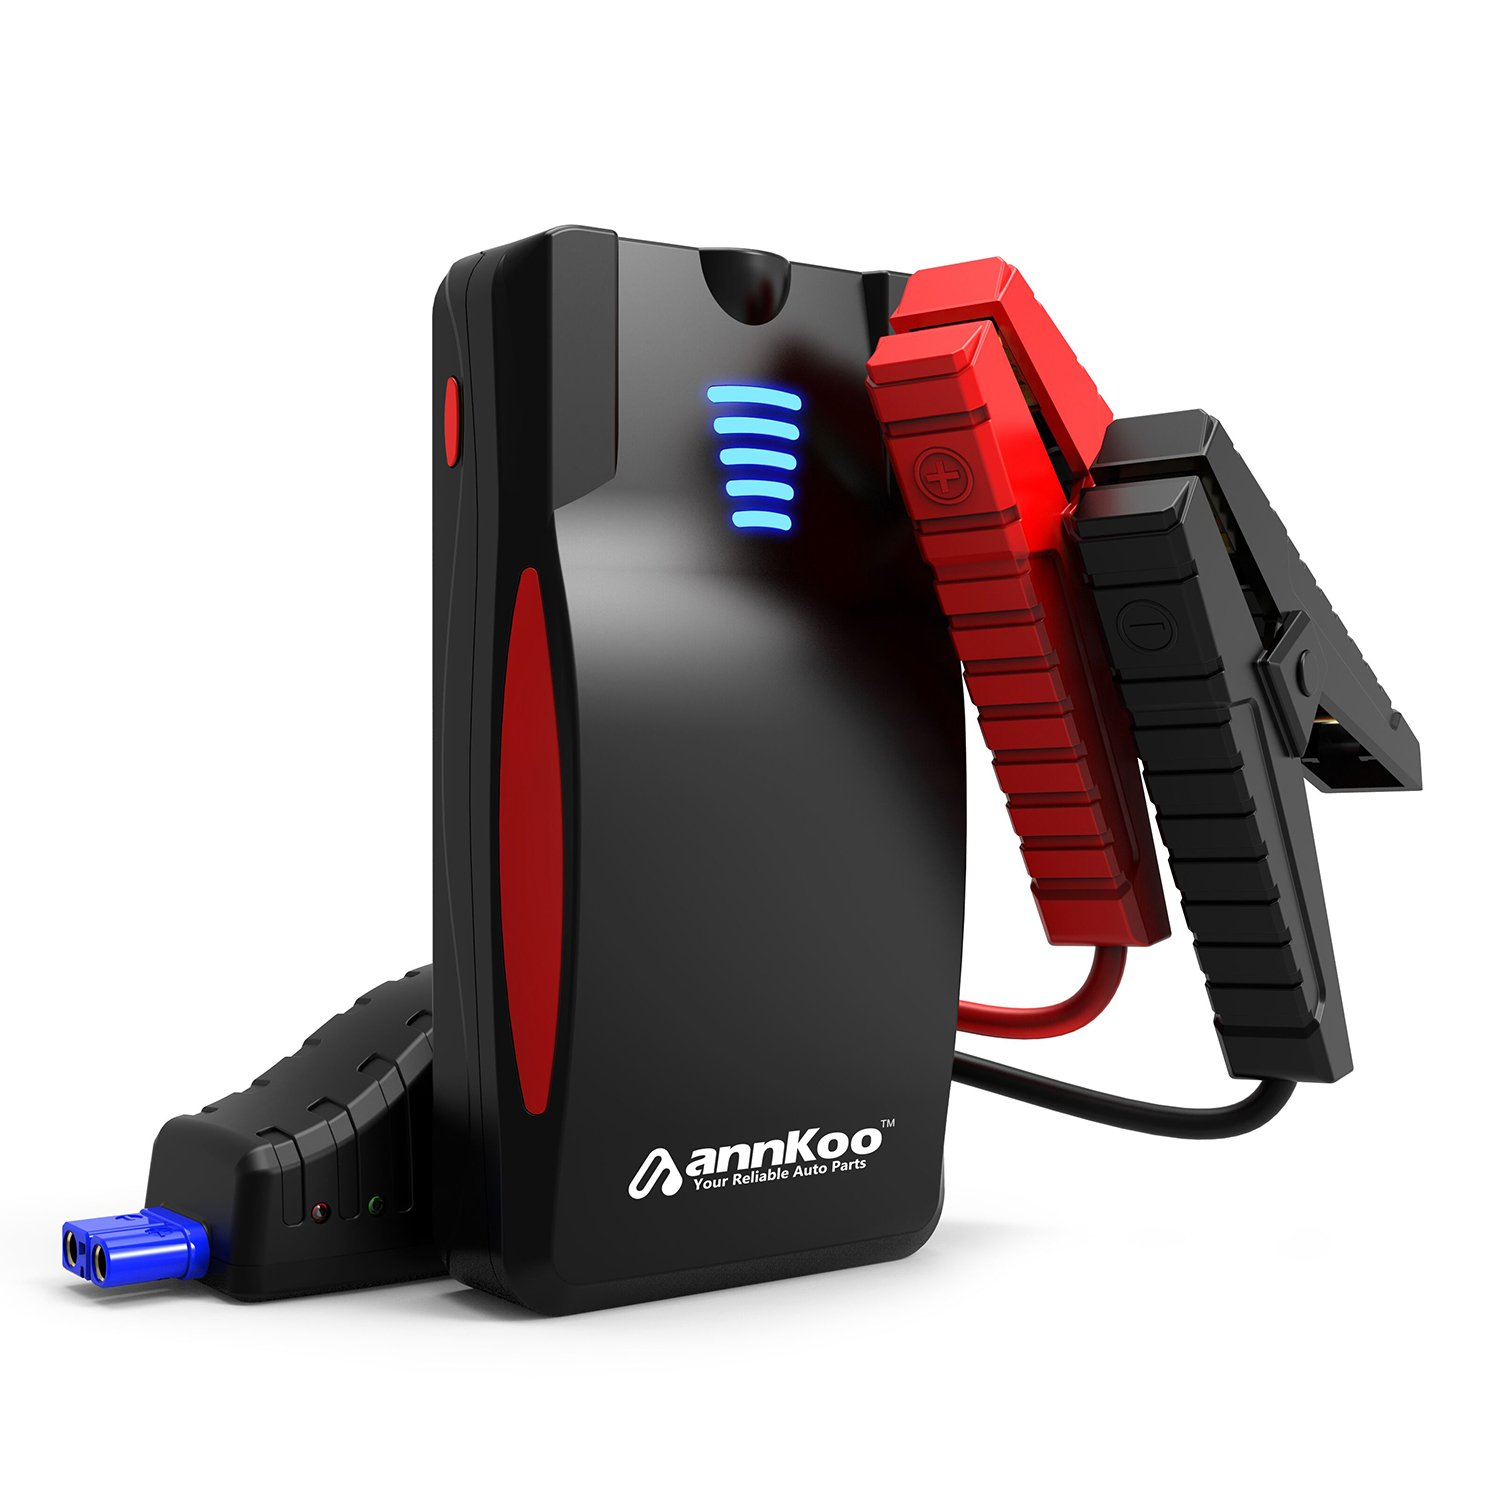 Car Jump Starter -ANNKOO AN02 Portable 600A Peak Current 14000mAh(Up to 6.0L Gas or 4.5L Diesel Engine) Phone Power Bank Auto Battery Charger Quick Charge Output, with LED Light, Black/Red